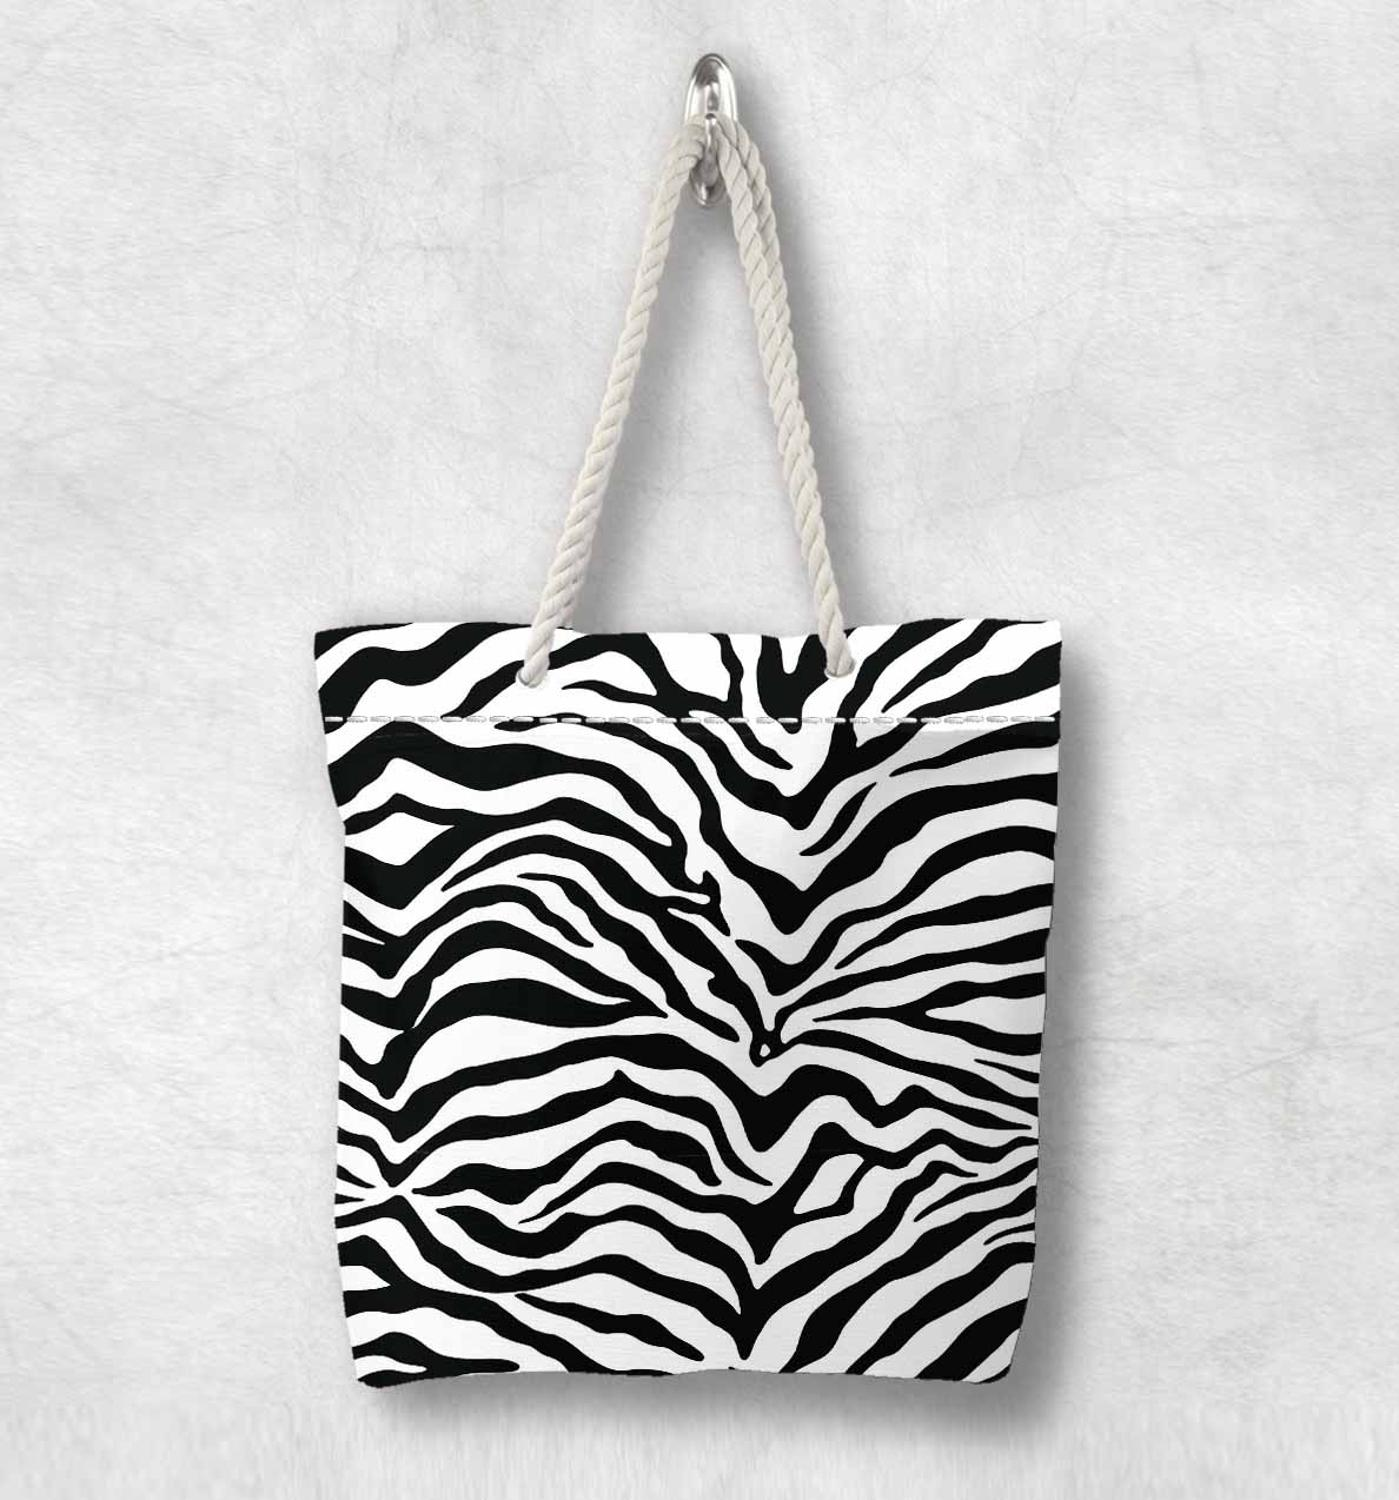 Tote-Bag Rope-Handle Canvas-Bag Zebra Black White Zippered New-Fashion Fur-Design Else title=